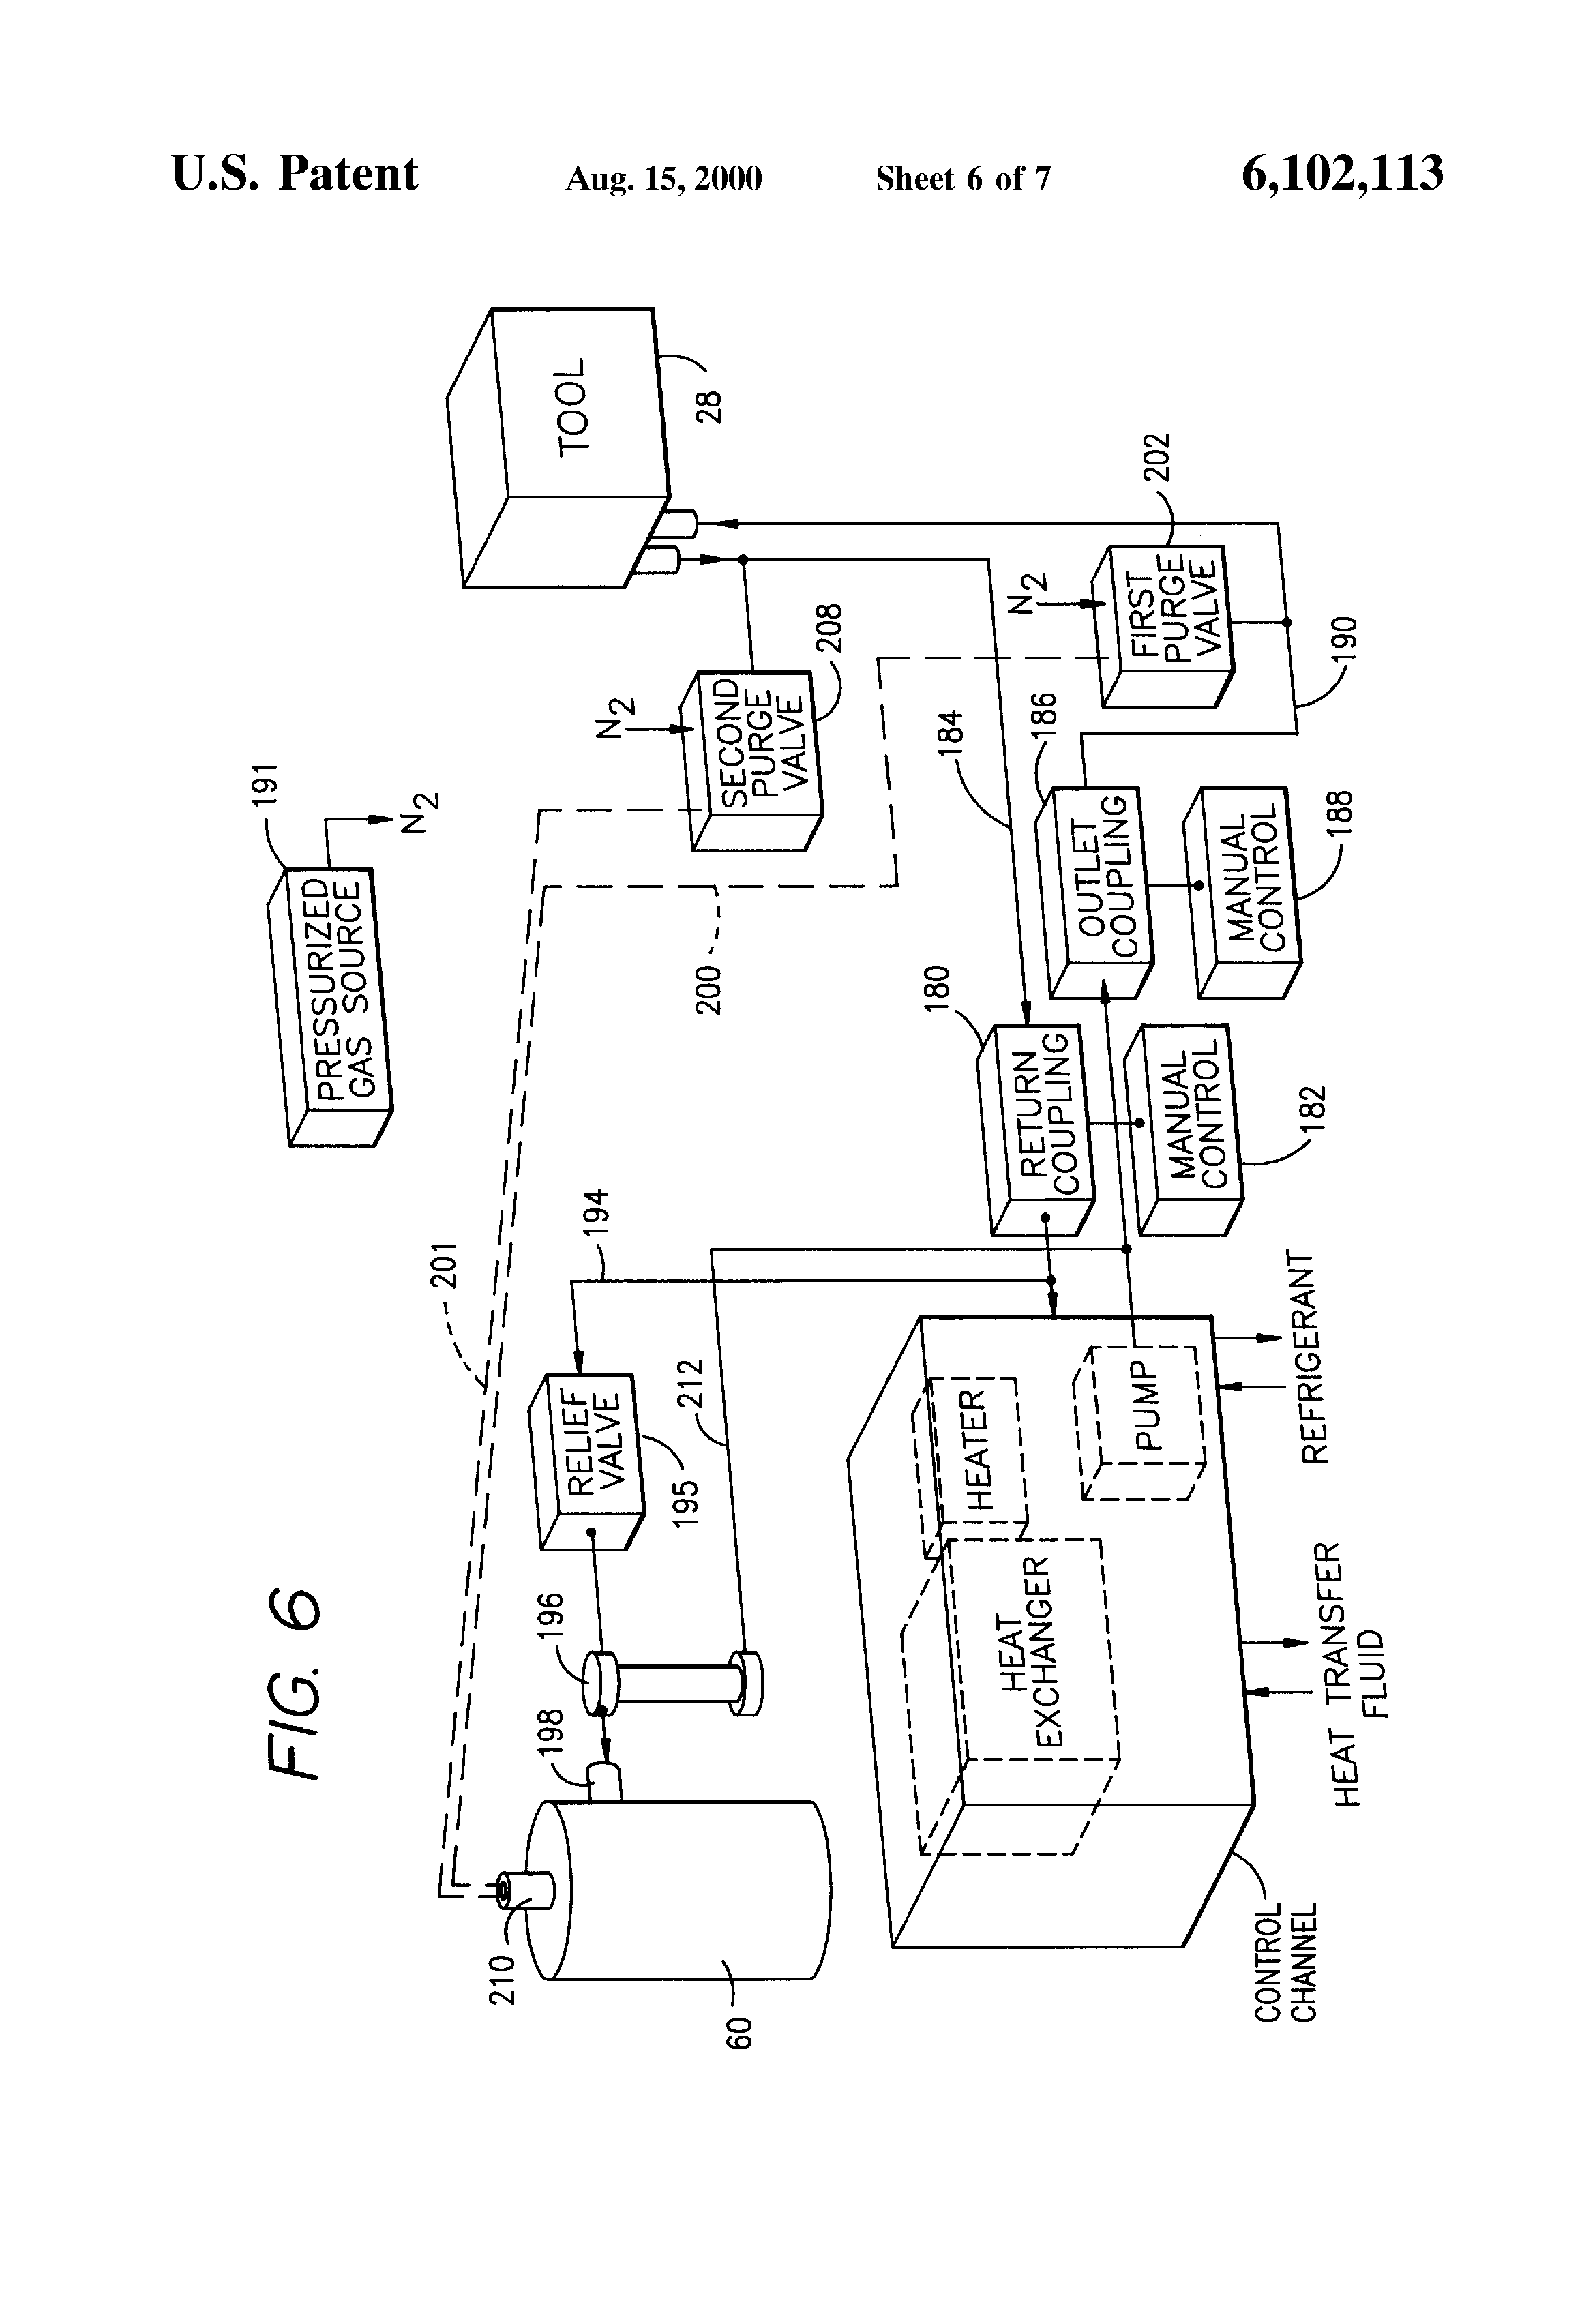 S led Data Systems furthermore Electrical Interlock Symbol also Safety Switches And Rcds additionally Intro To Electrical Diagrams in addition Ic Timer. on transfer functions circuits